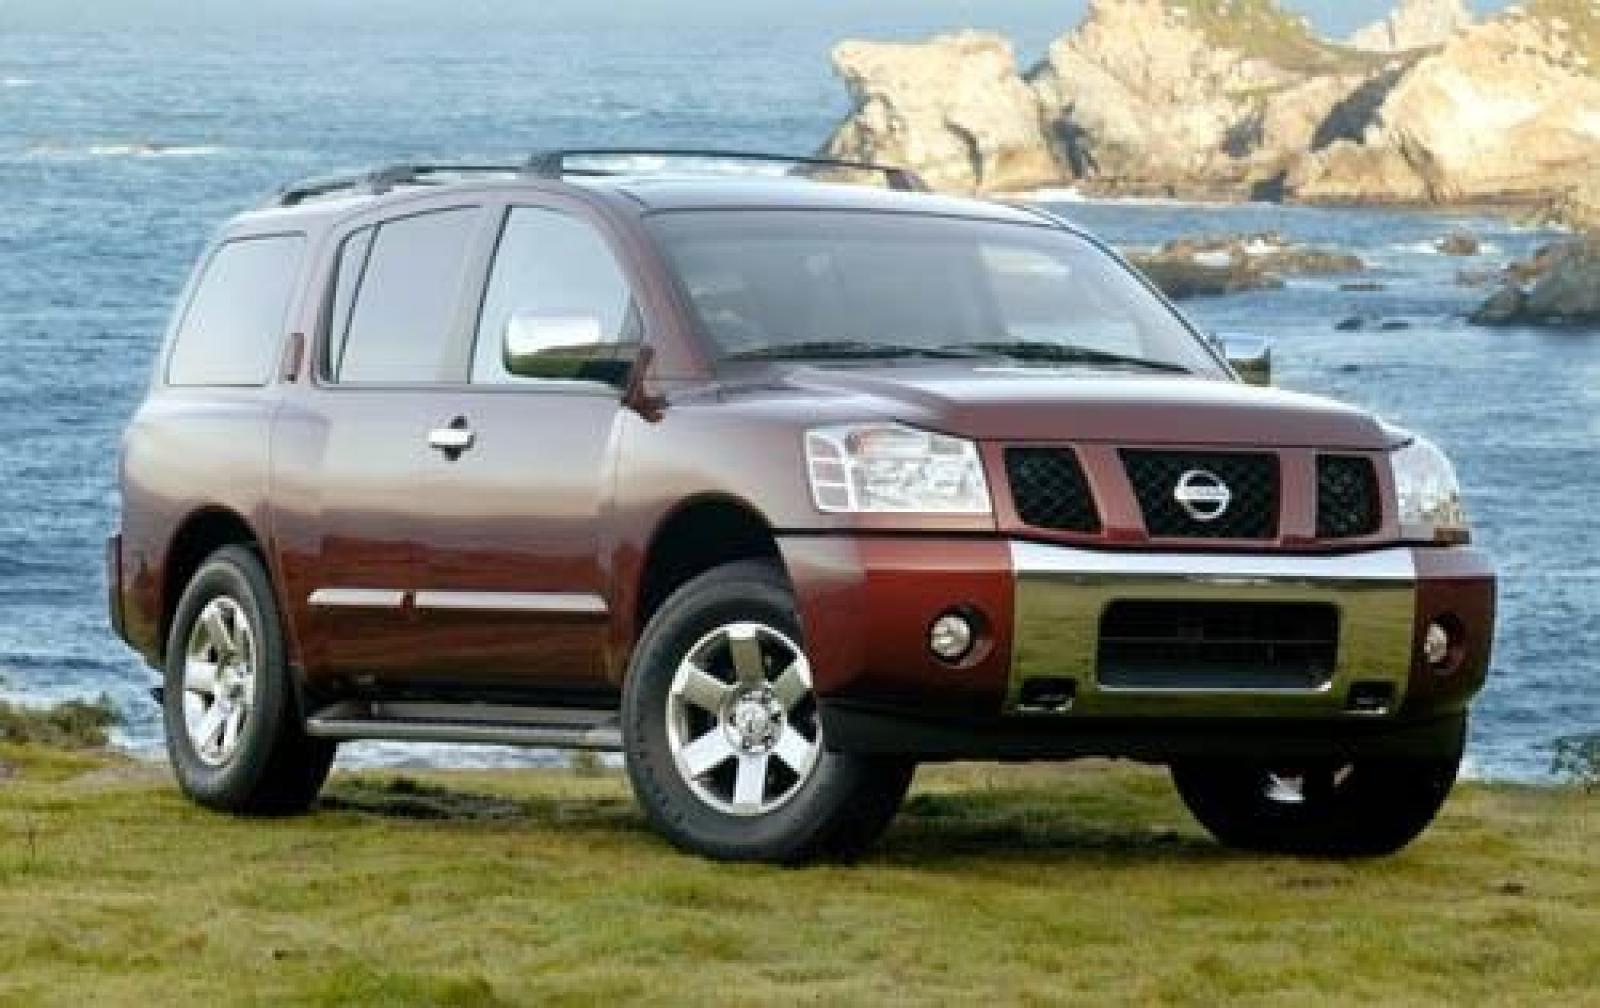 2006 nissan armada information and photos zombiedrive 2004 nissan armada rear e interior 2 800 1024 1280 1600 origin vanachro Images